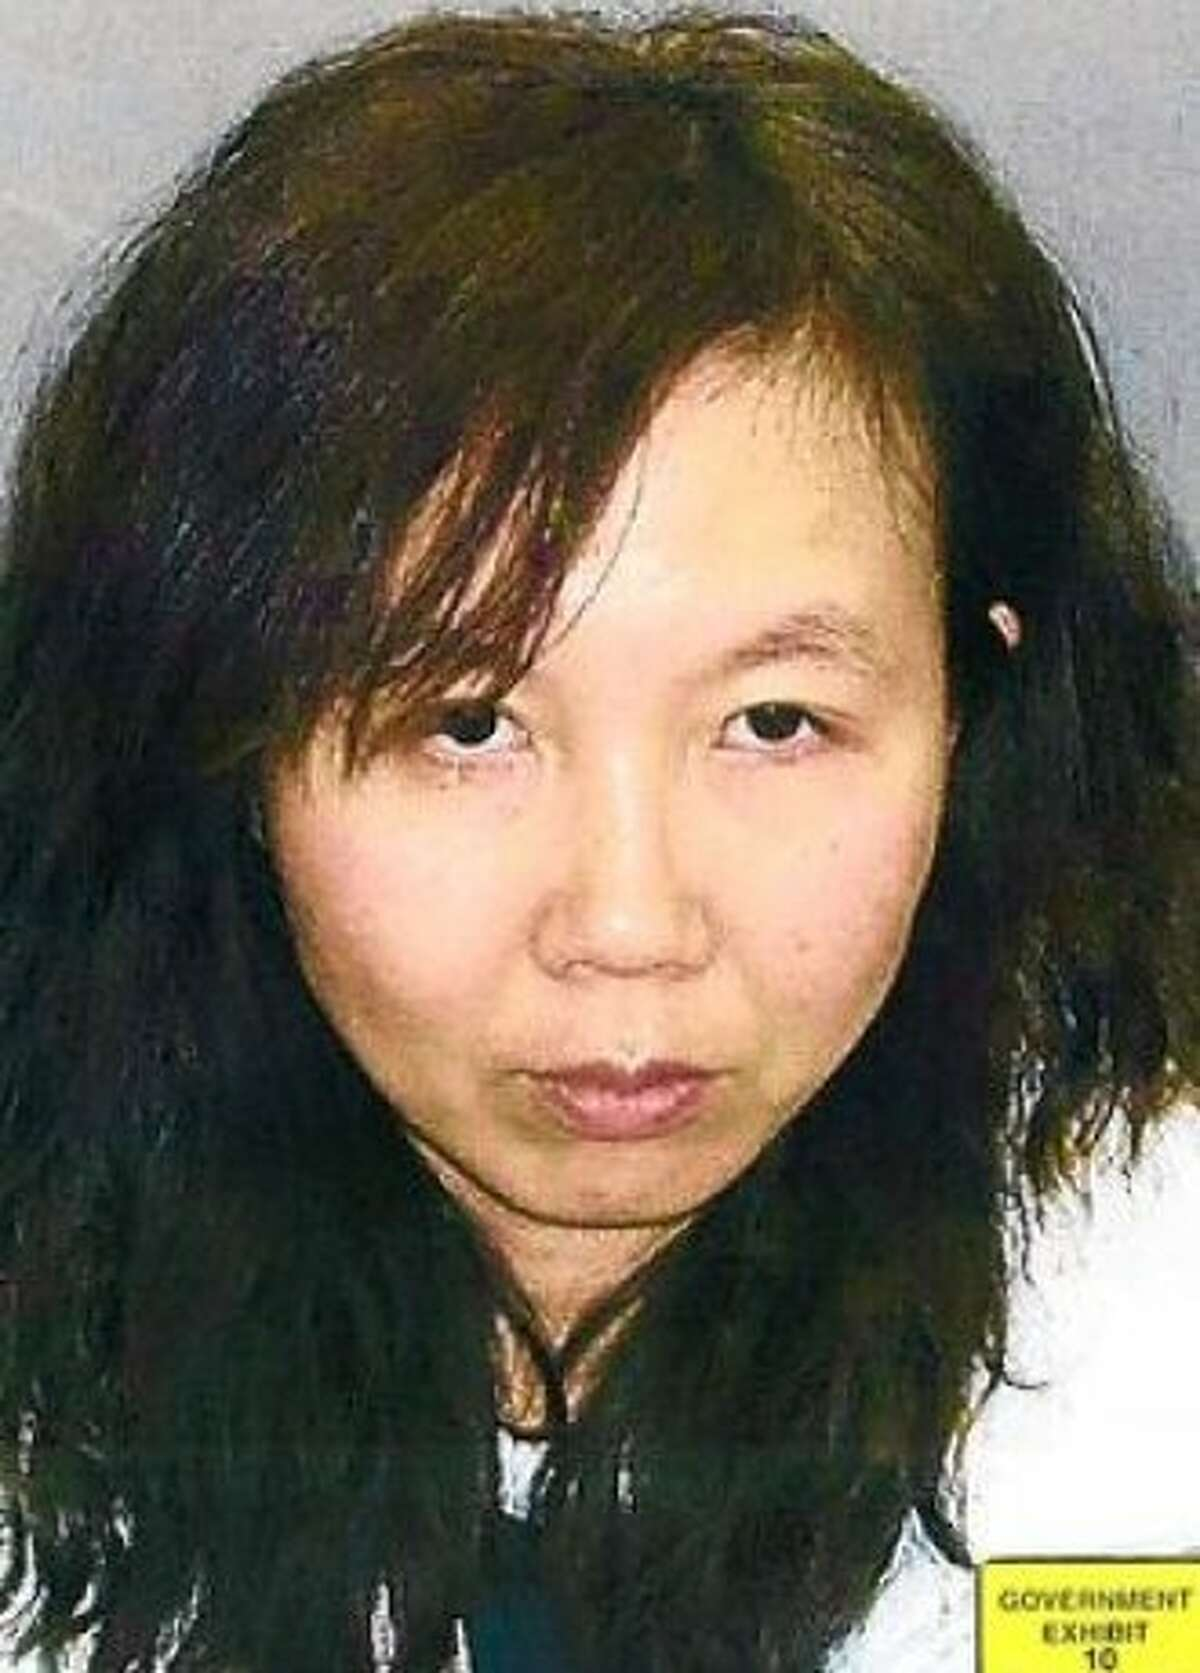 Winifred Jiau, of Fremont, was one of 13 people arrested in connection with insider trading involving Primary Global Research, a now closed Mountain View firm that connected investors and hedge funds with supposed industry experts